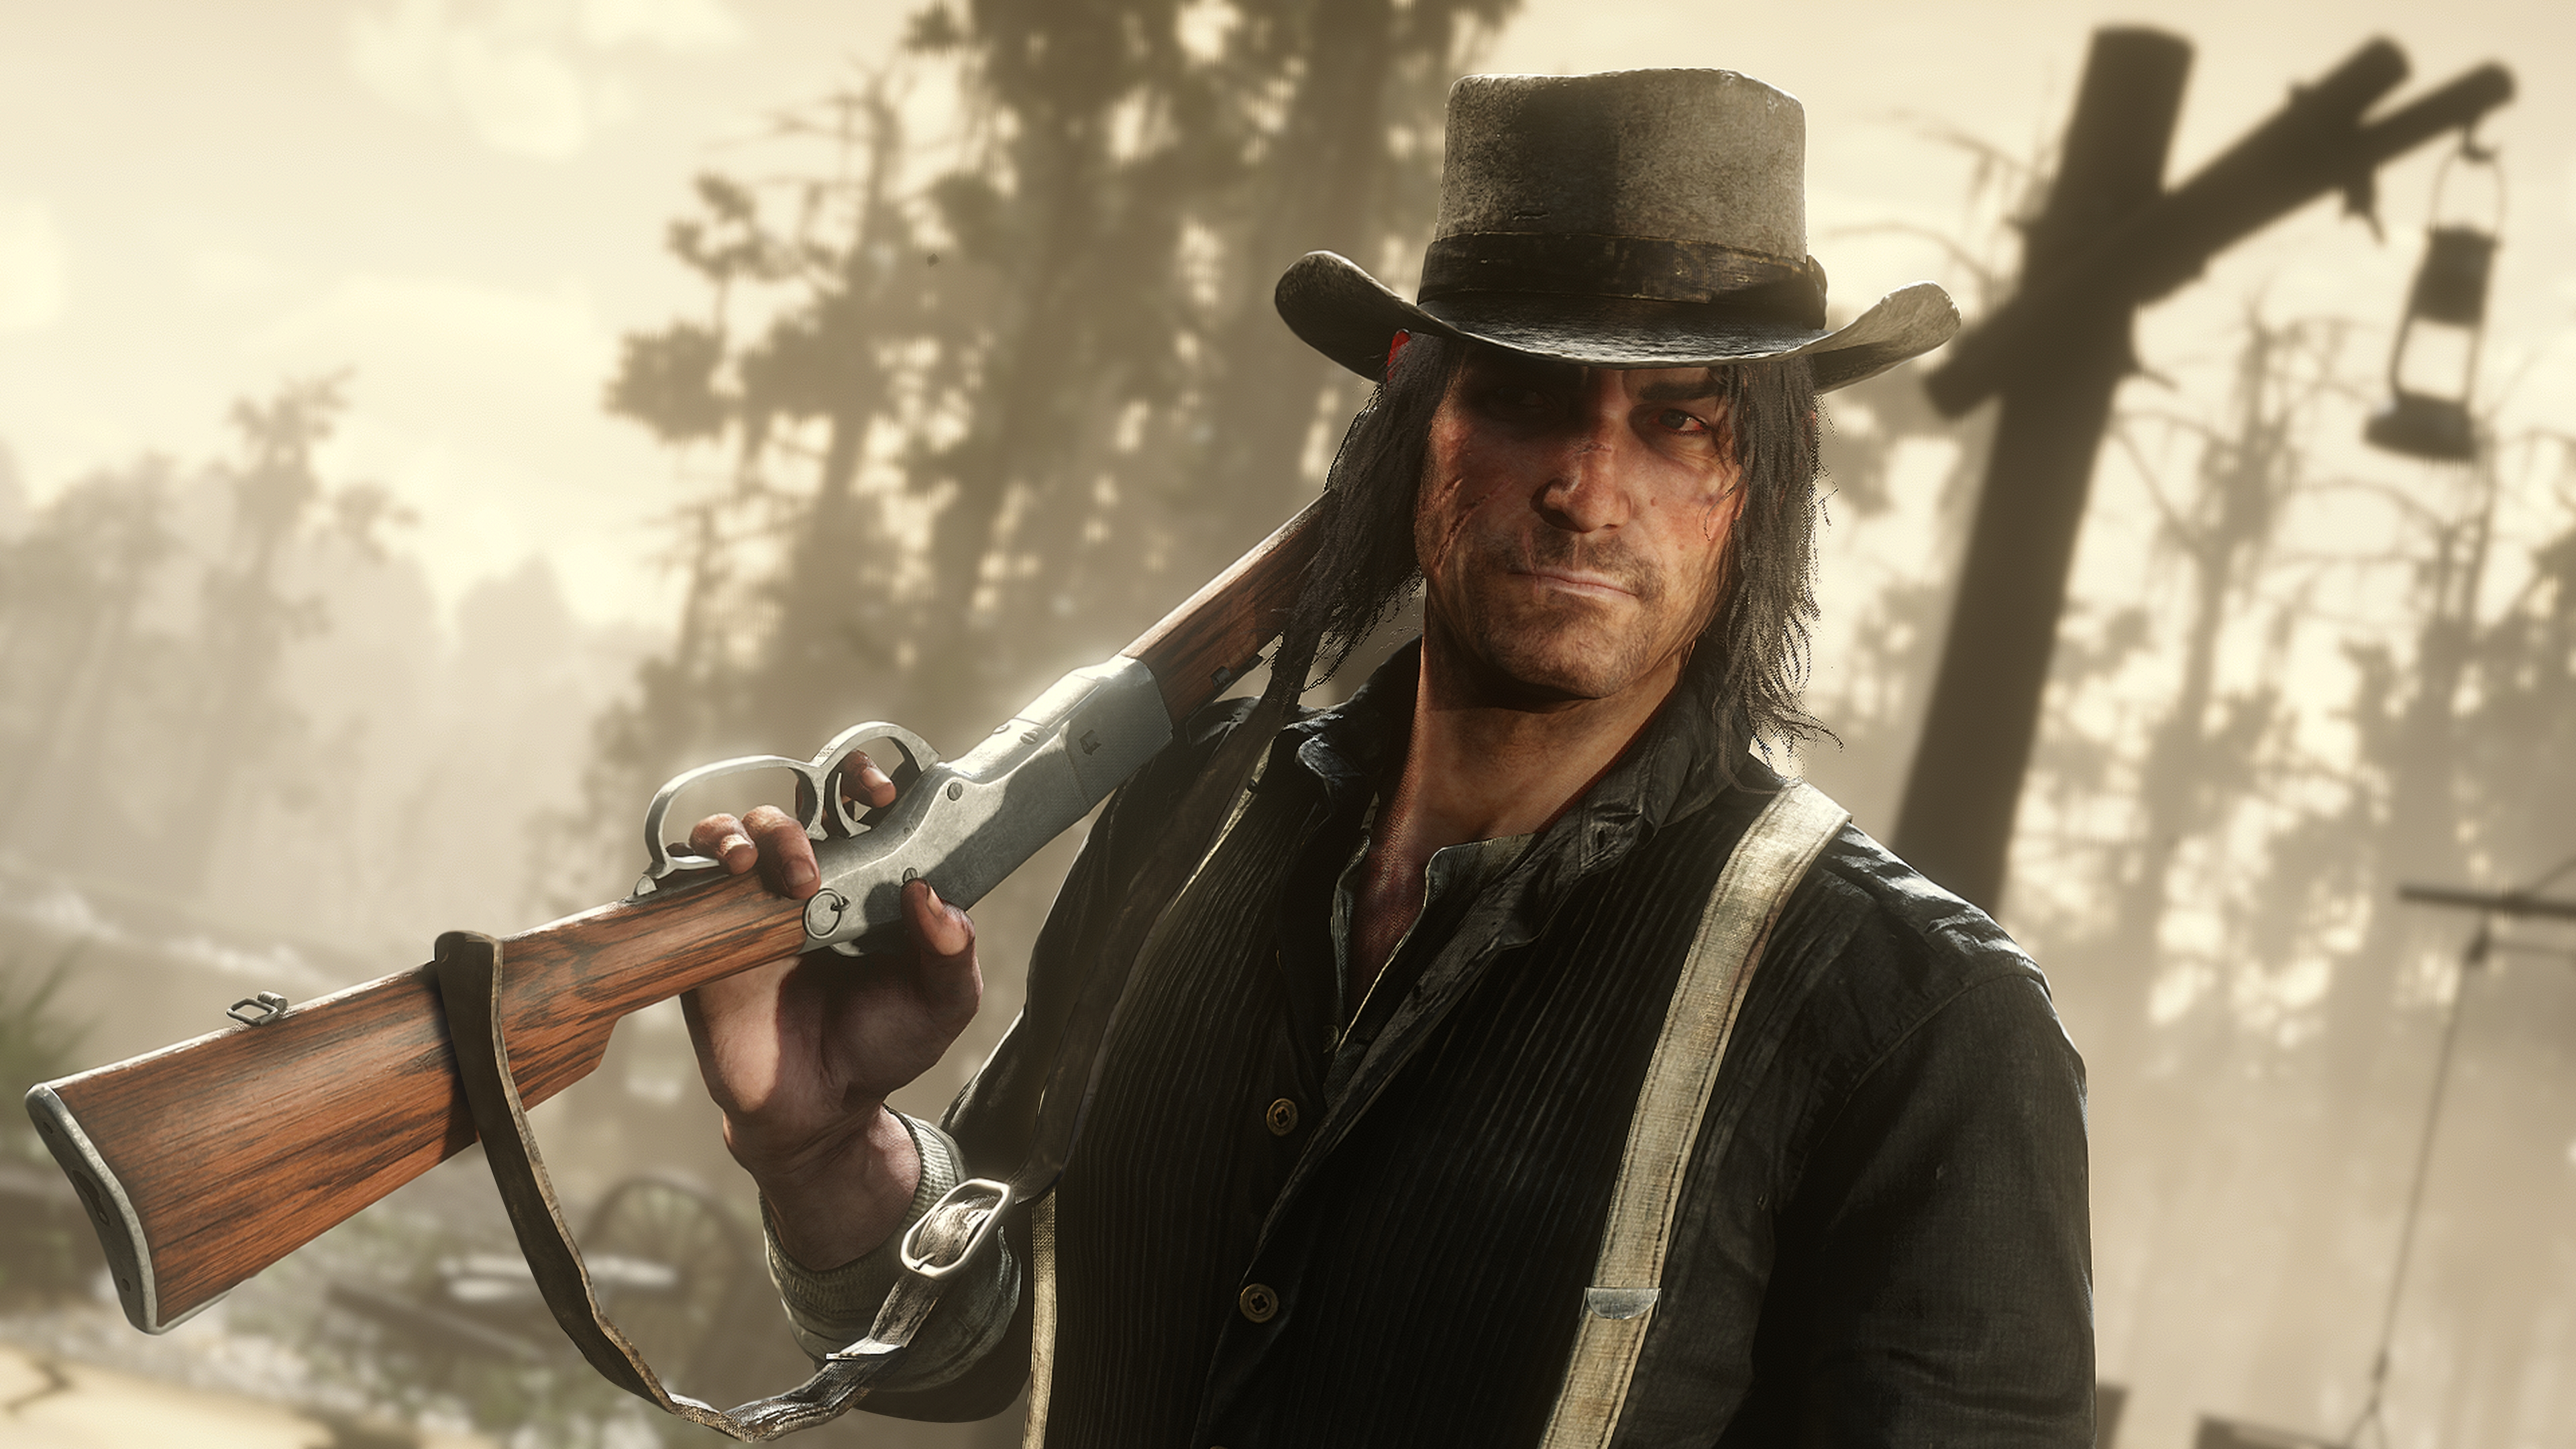 Red Dead Redemption 2 Review - Living the Outlaw Life